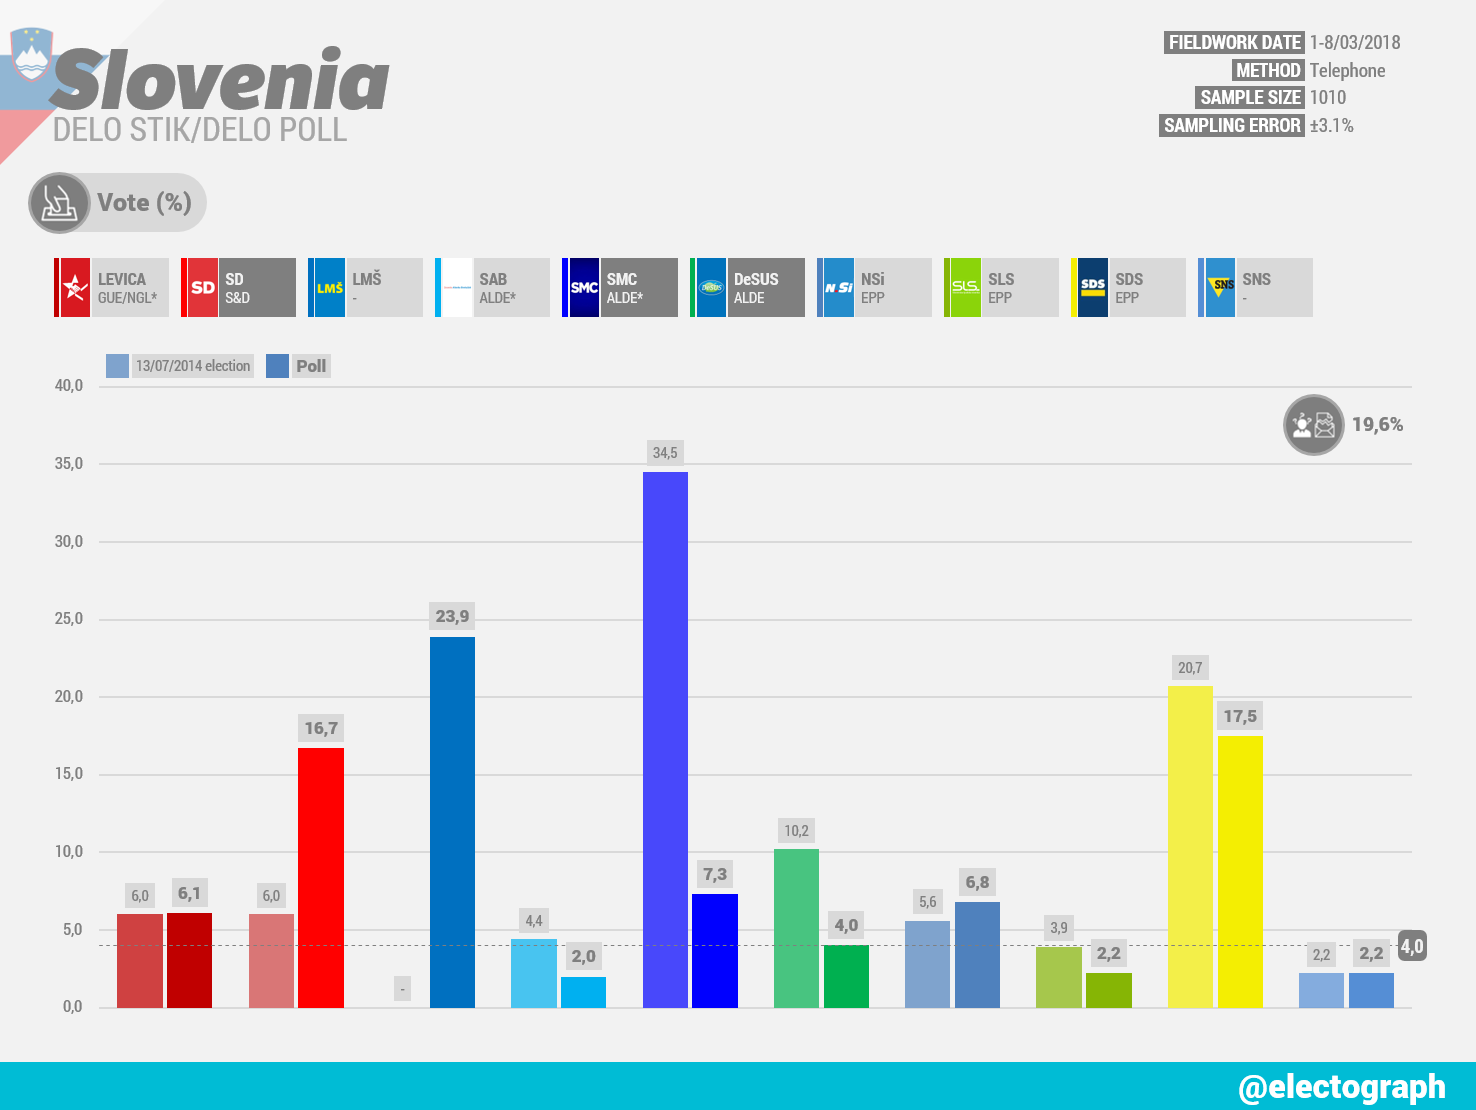 SLOVENIA Delo Stik poll chart for Delo, March 2018